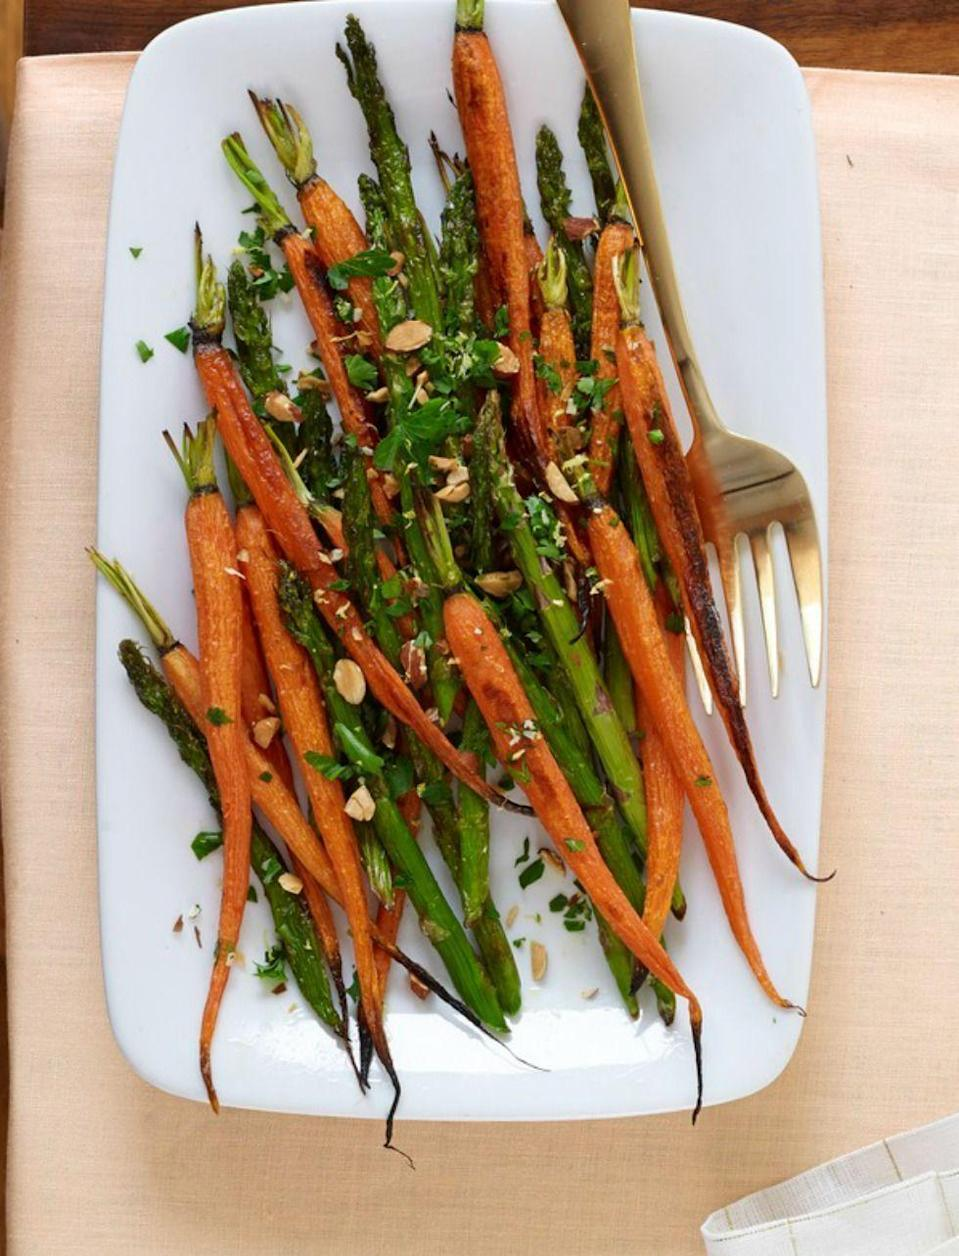 """<p>You'll want to add this gremolata, a mixture of almonds, garlic, lemon zest, parsley and lemon juice, to everything.</p><p><em><a href=""""https://www.womansday.com/food-recipes/food-drinks/recipes/a53987/roasted-carrots-and-asparagus-with-almond-gremolata-recipe/"""" rel=""""nofollow noopener"""" target=""""_blank"""" data-ylk=""""slk:Get the recipe from Woman's Day »"""" class=""""link rapid-noclick-resp"""">Get the recipe from Woman's Day »</a></em></p>"""